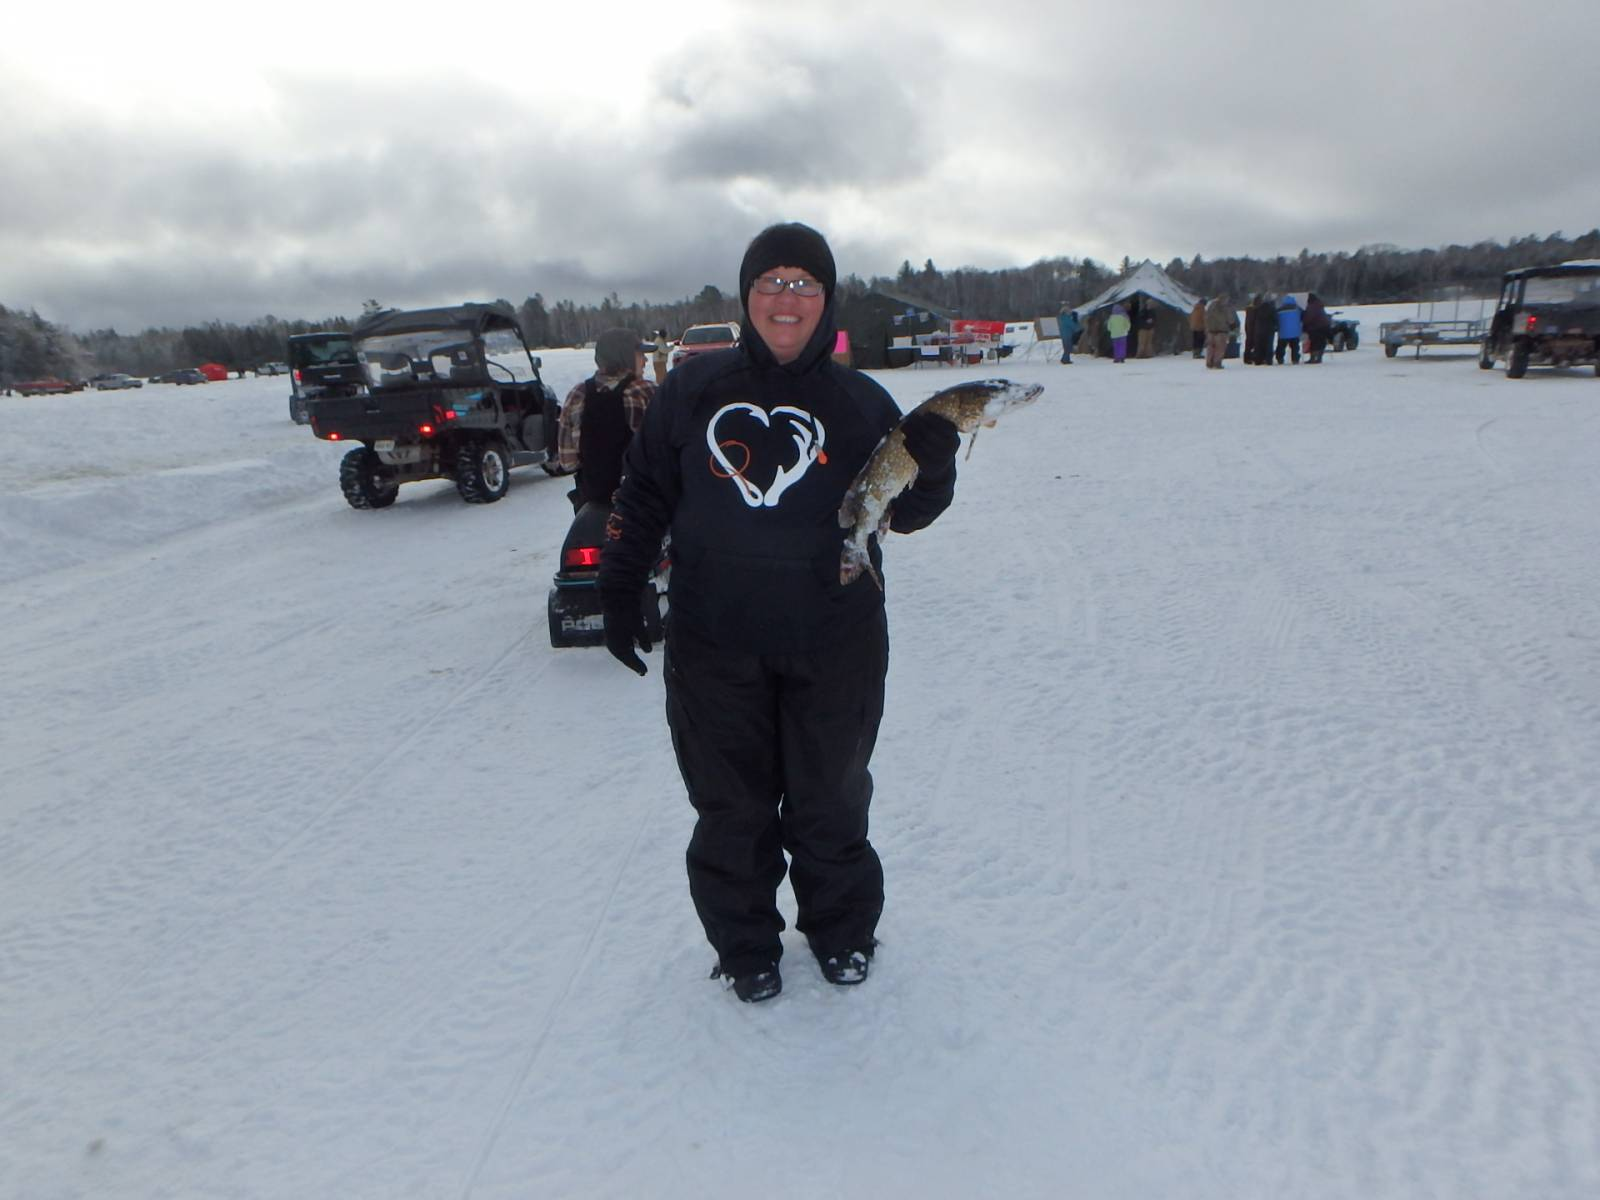 2021 Clam Lake WI Ice Fishing Contest